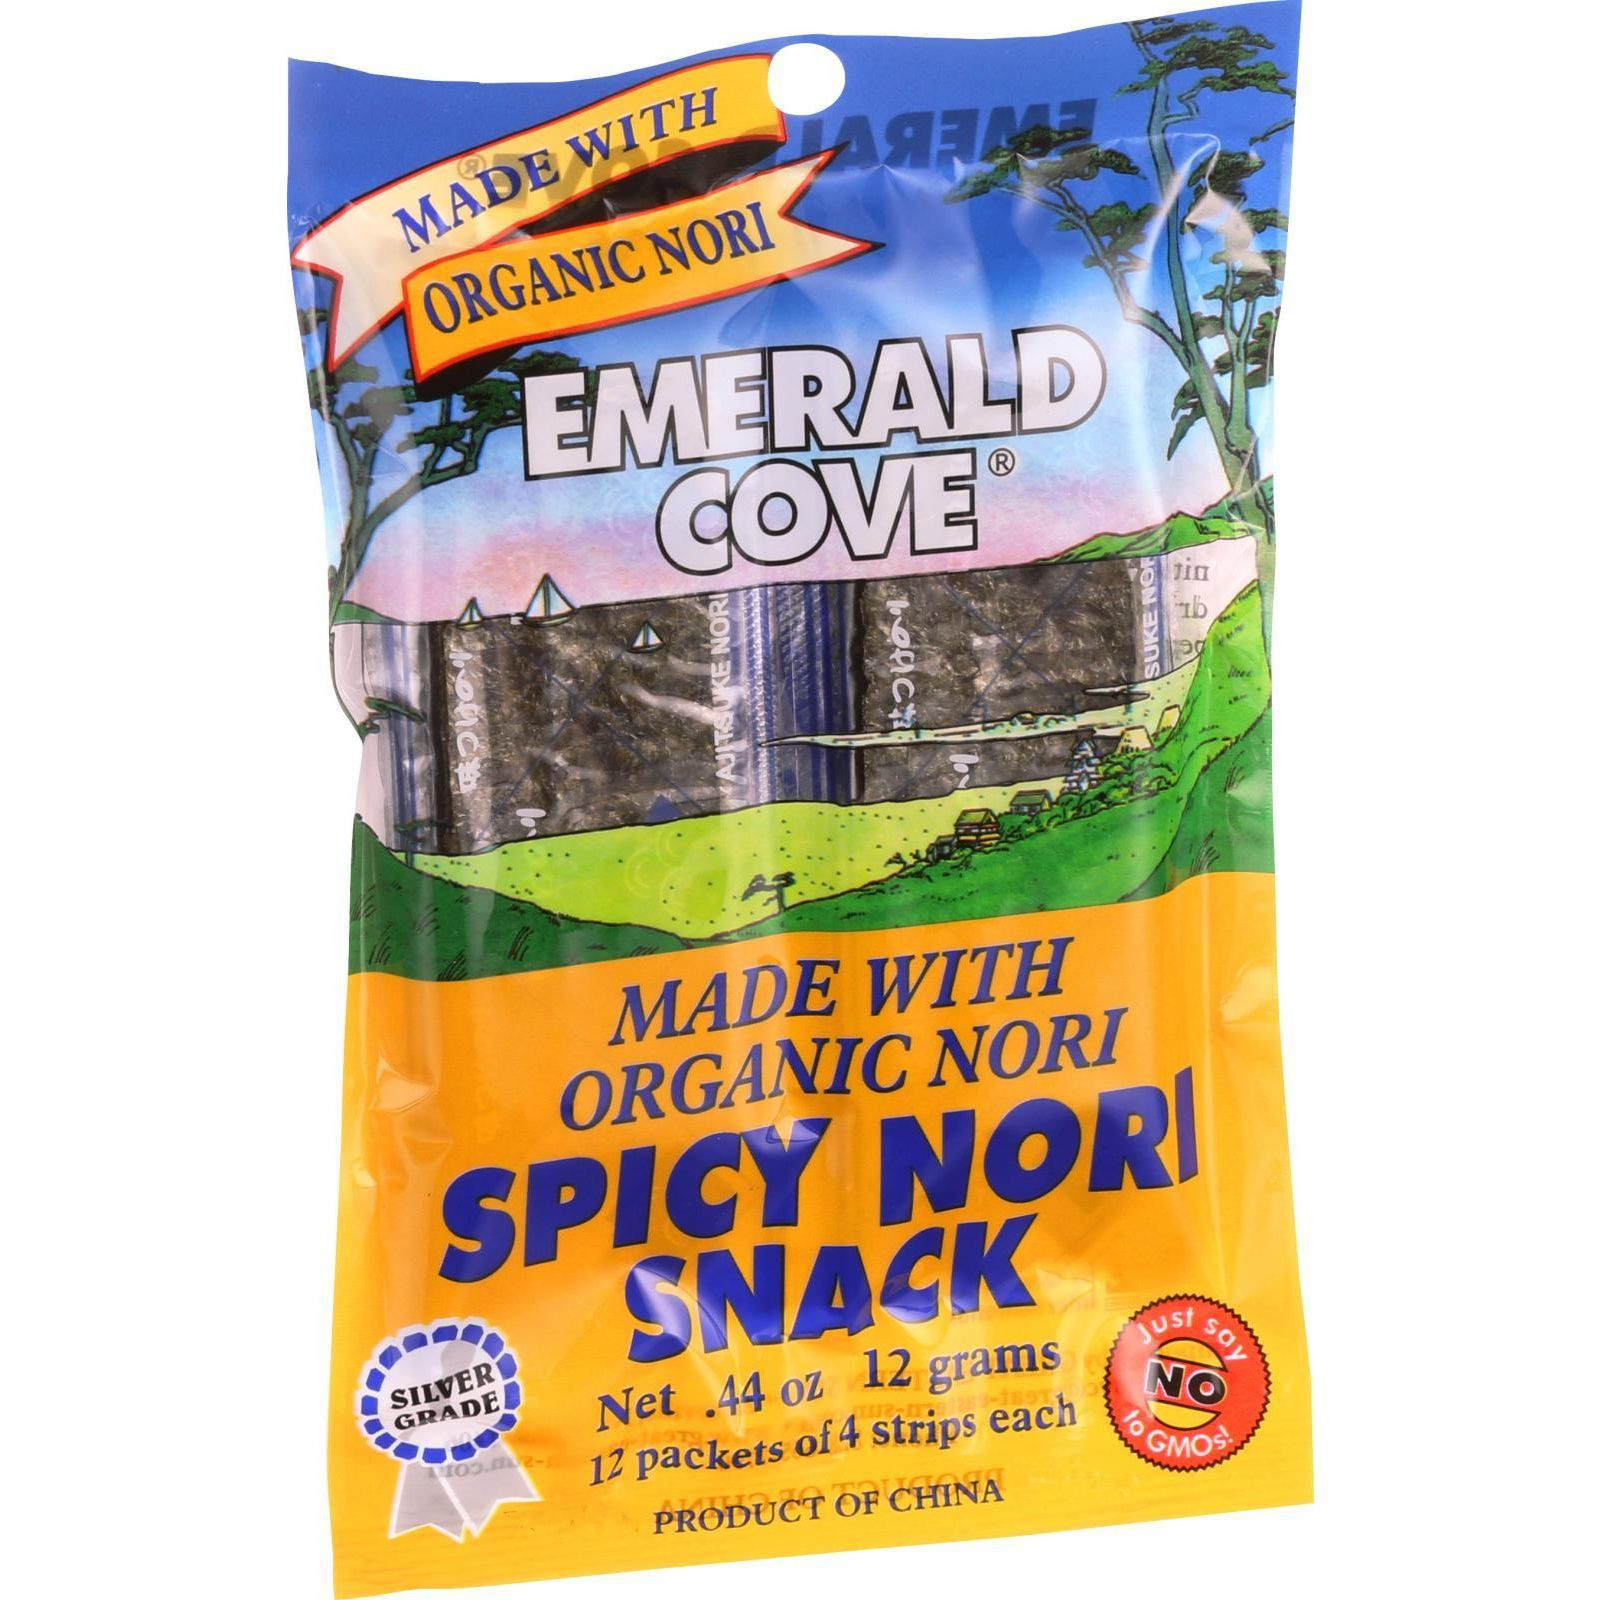 Emerald Cove Spicy Nori Snack Organic Nori Silver Grade 48 Count Case of 6 by